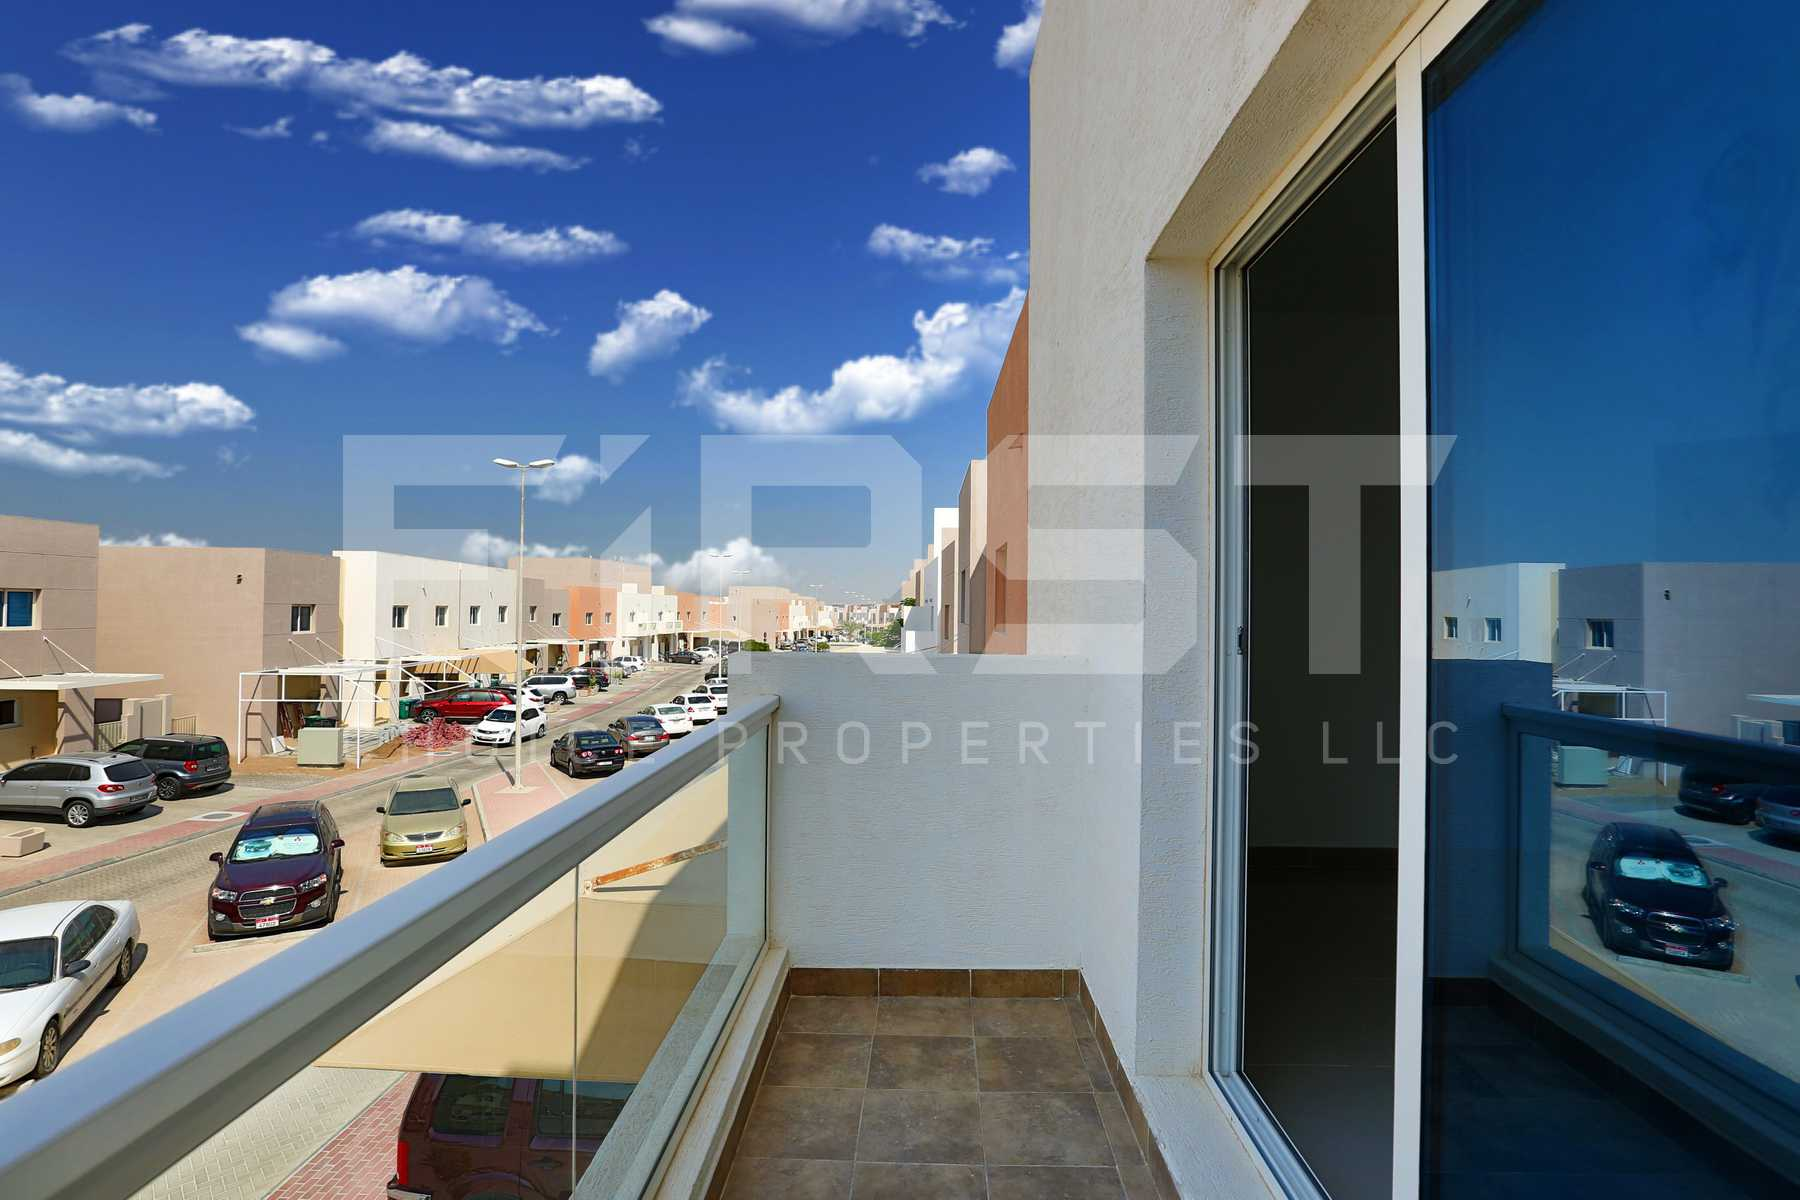 3 Bedroom Villa in Al Reef Villas Al Reef Abu Dhabi UAE 225.2 sq.m 2424 sq.ft (22).jpg